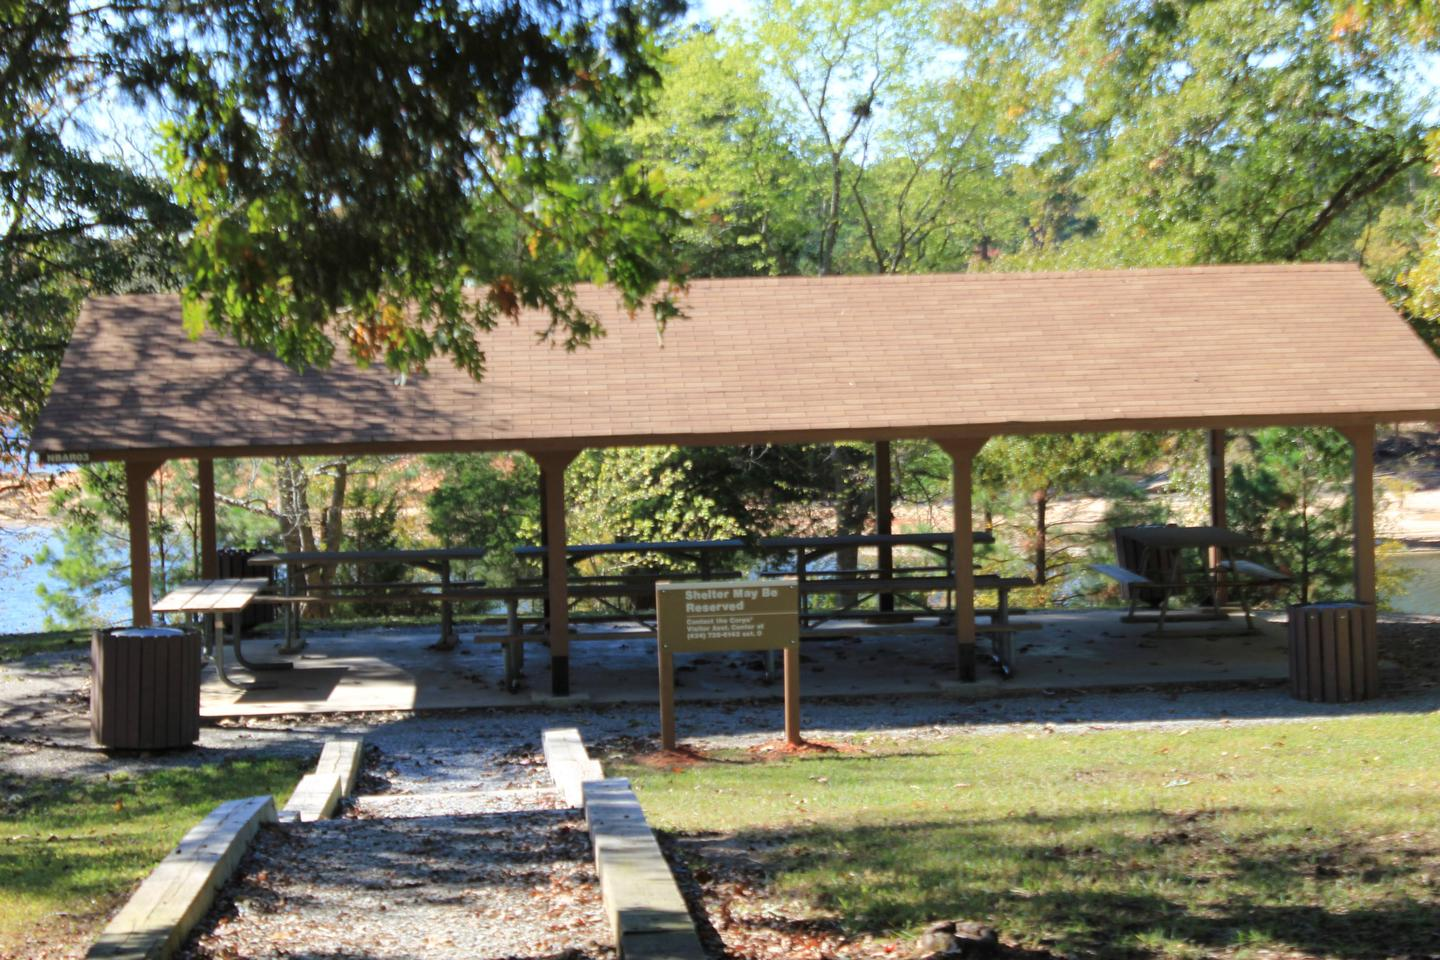 OSAGE Welcome to North Bend Park! This is the Osage Picnic Shelter. This shelter is located between the Amphitheater and the Day Use Area in North Bend Park.